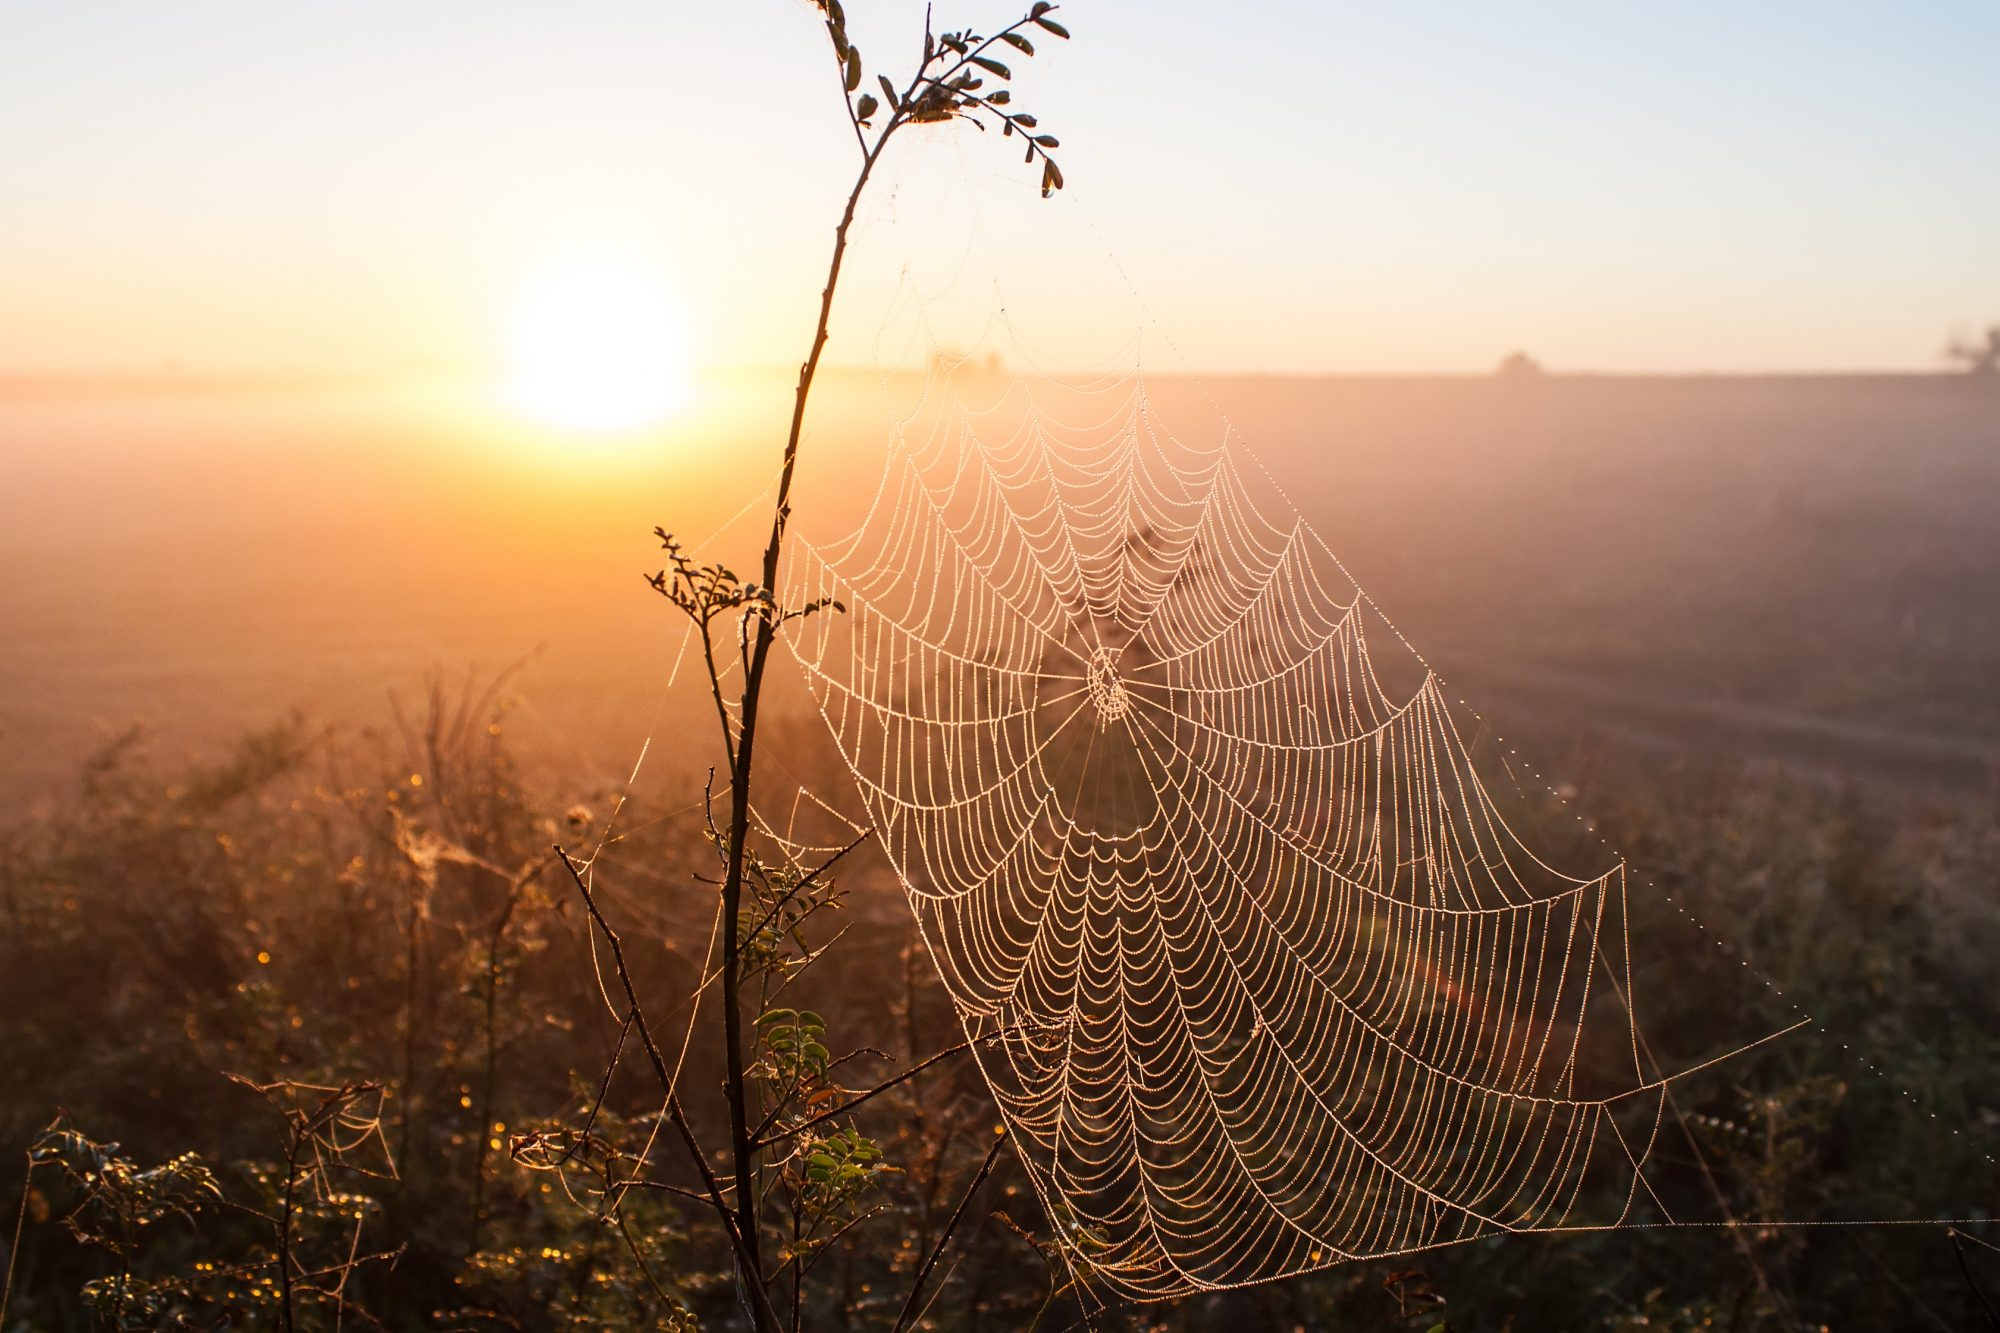 Autumn webs…